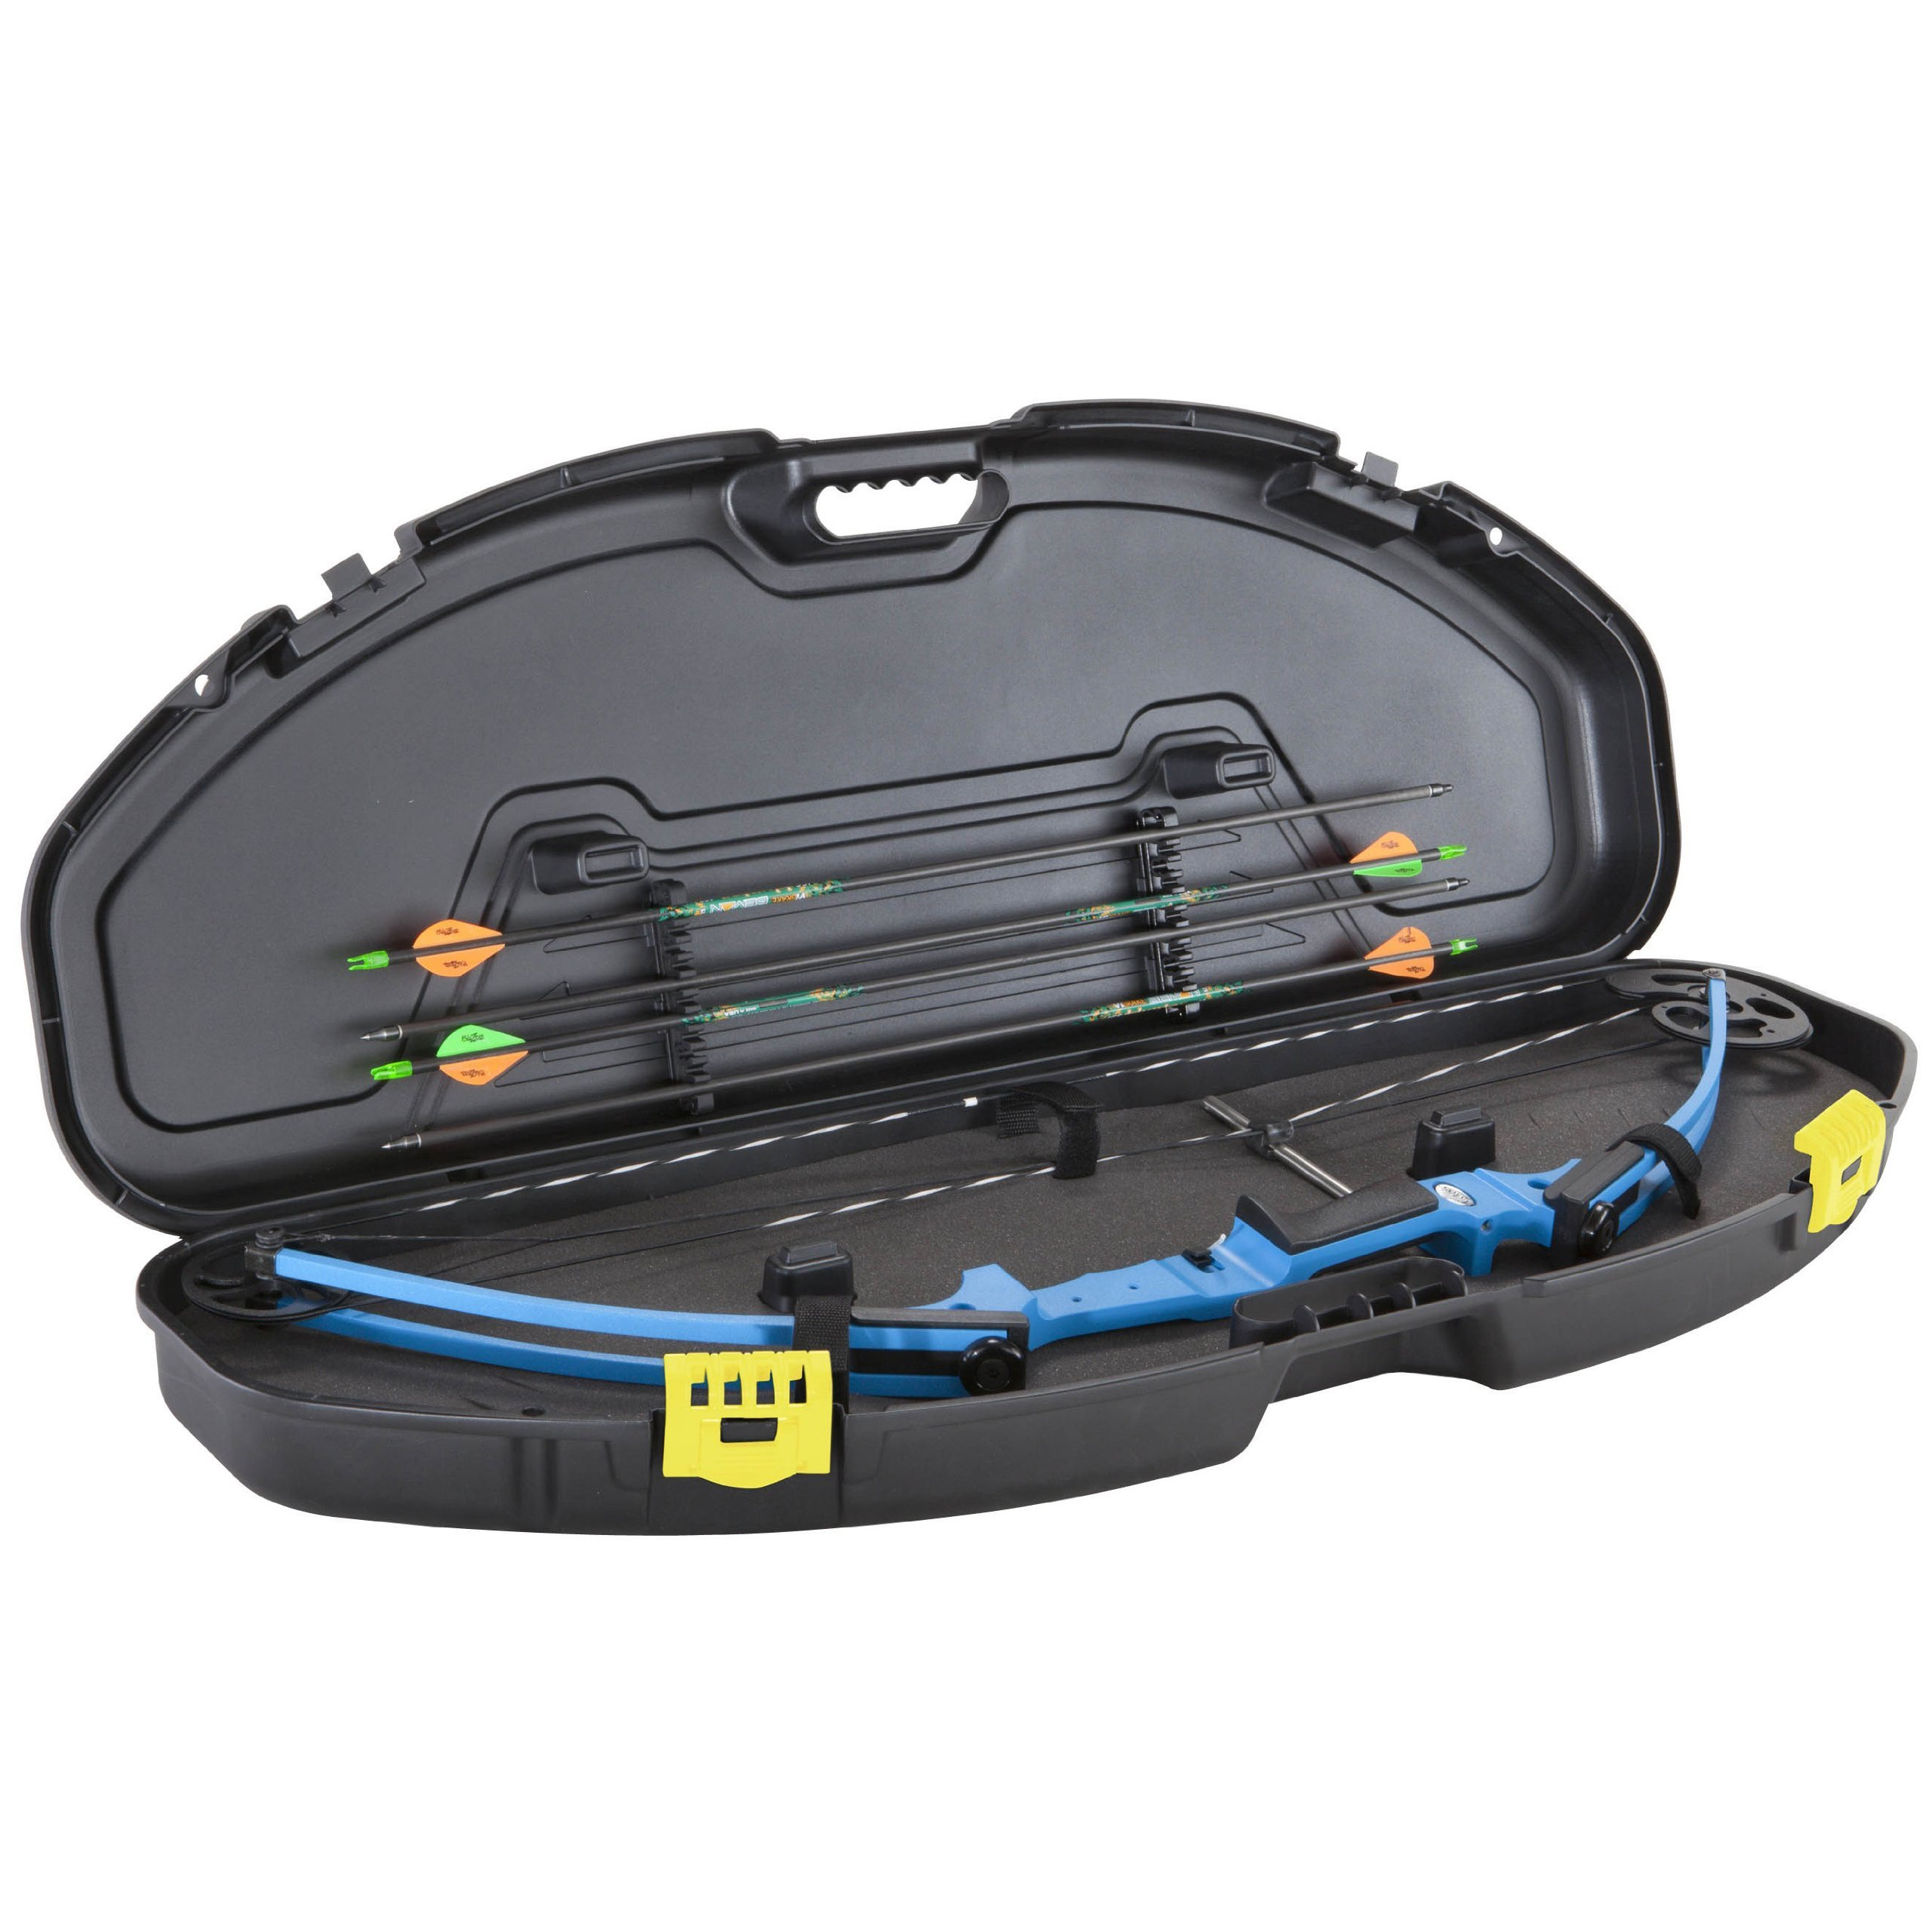 Plano Protector Ultra Compact Pillar Locked Protective Bow Case, Dimensions: 41'' x 15'' x 4.75'' 6 lbs by Plano